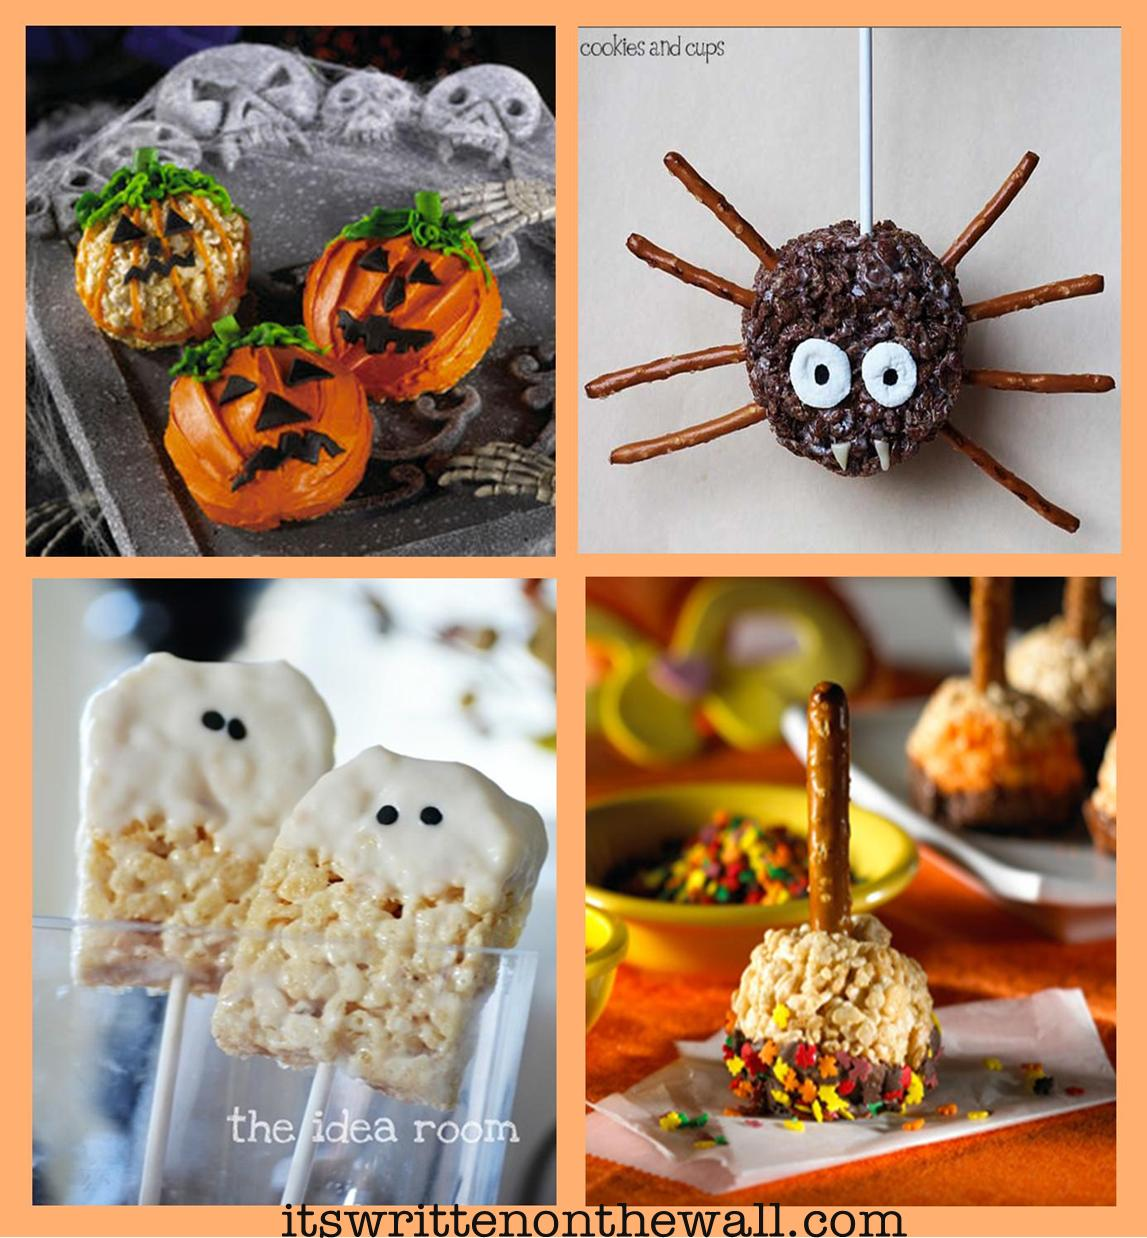 snack o lantern treats spider ghosts chocolate pumpkin eater treats